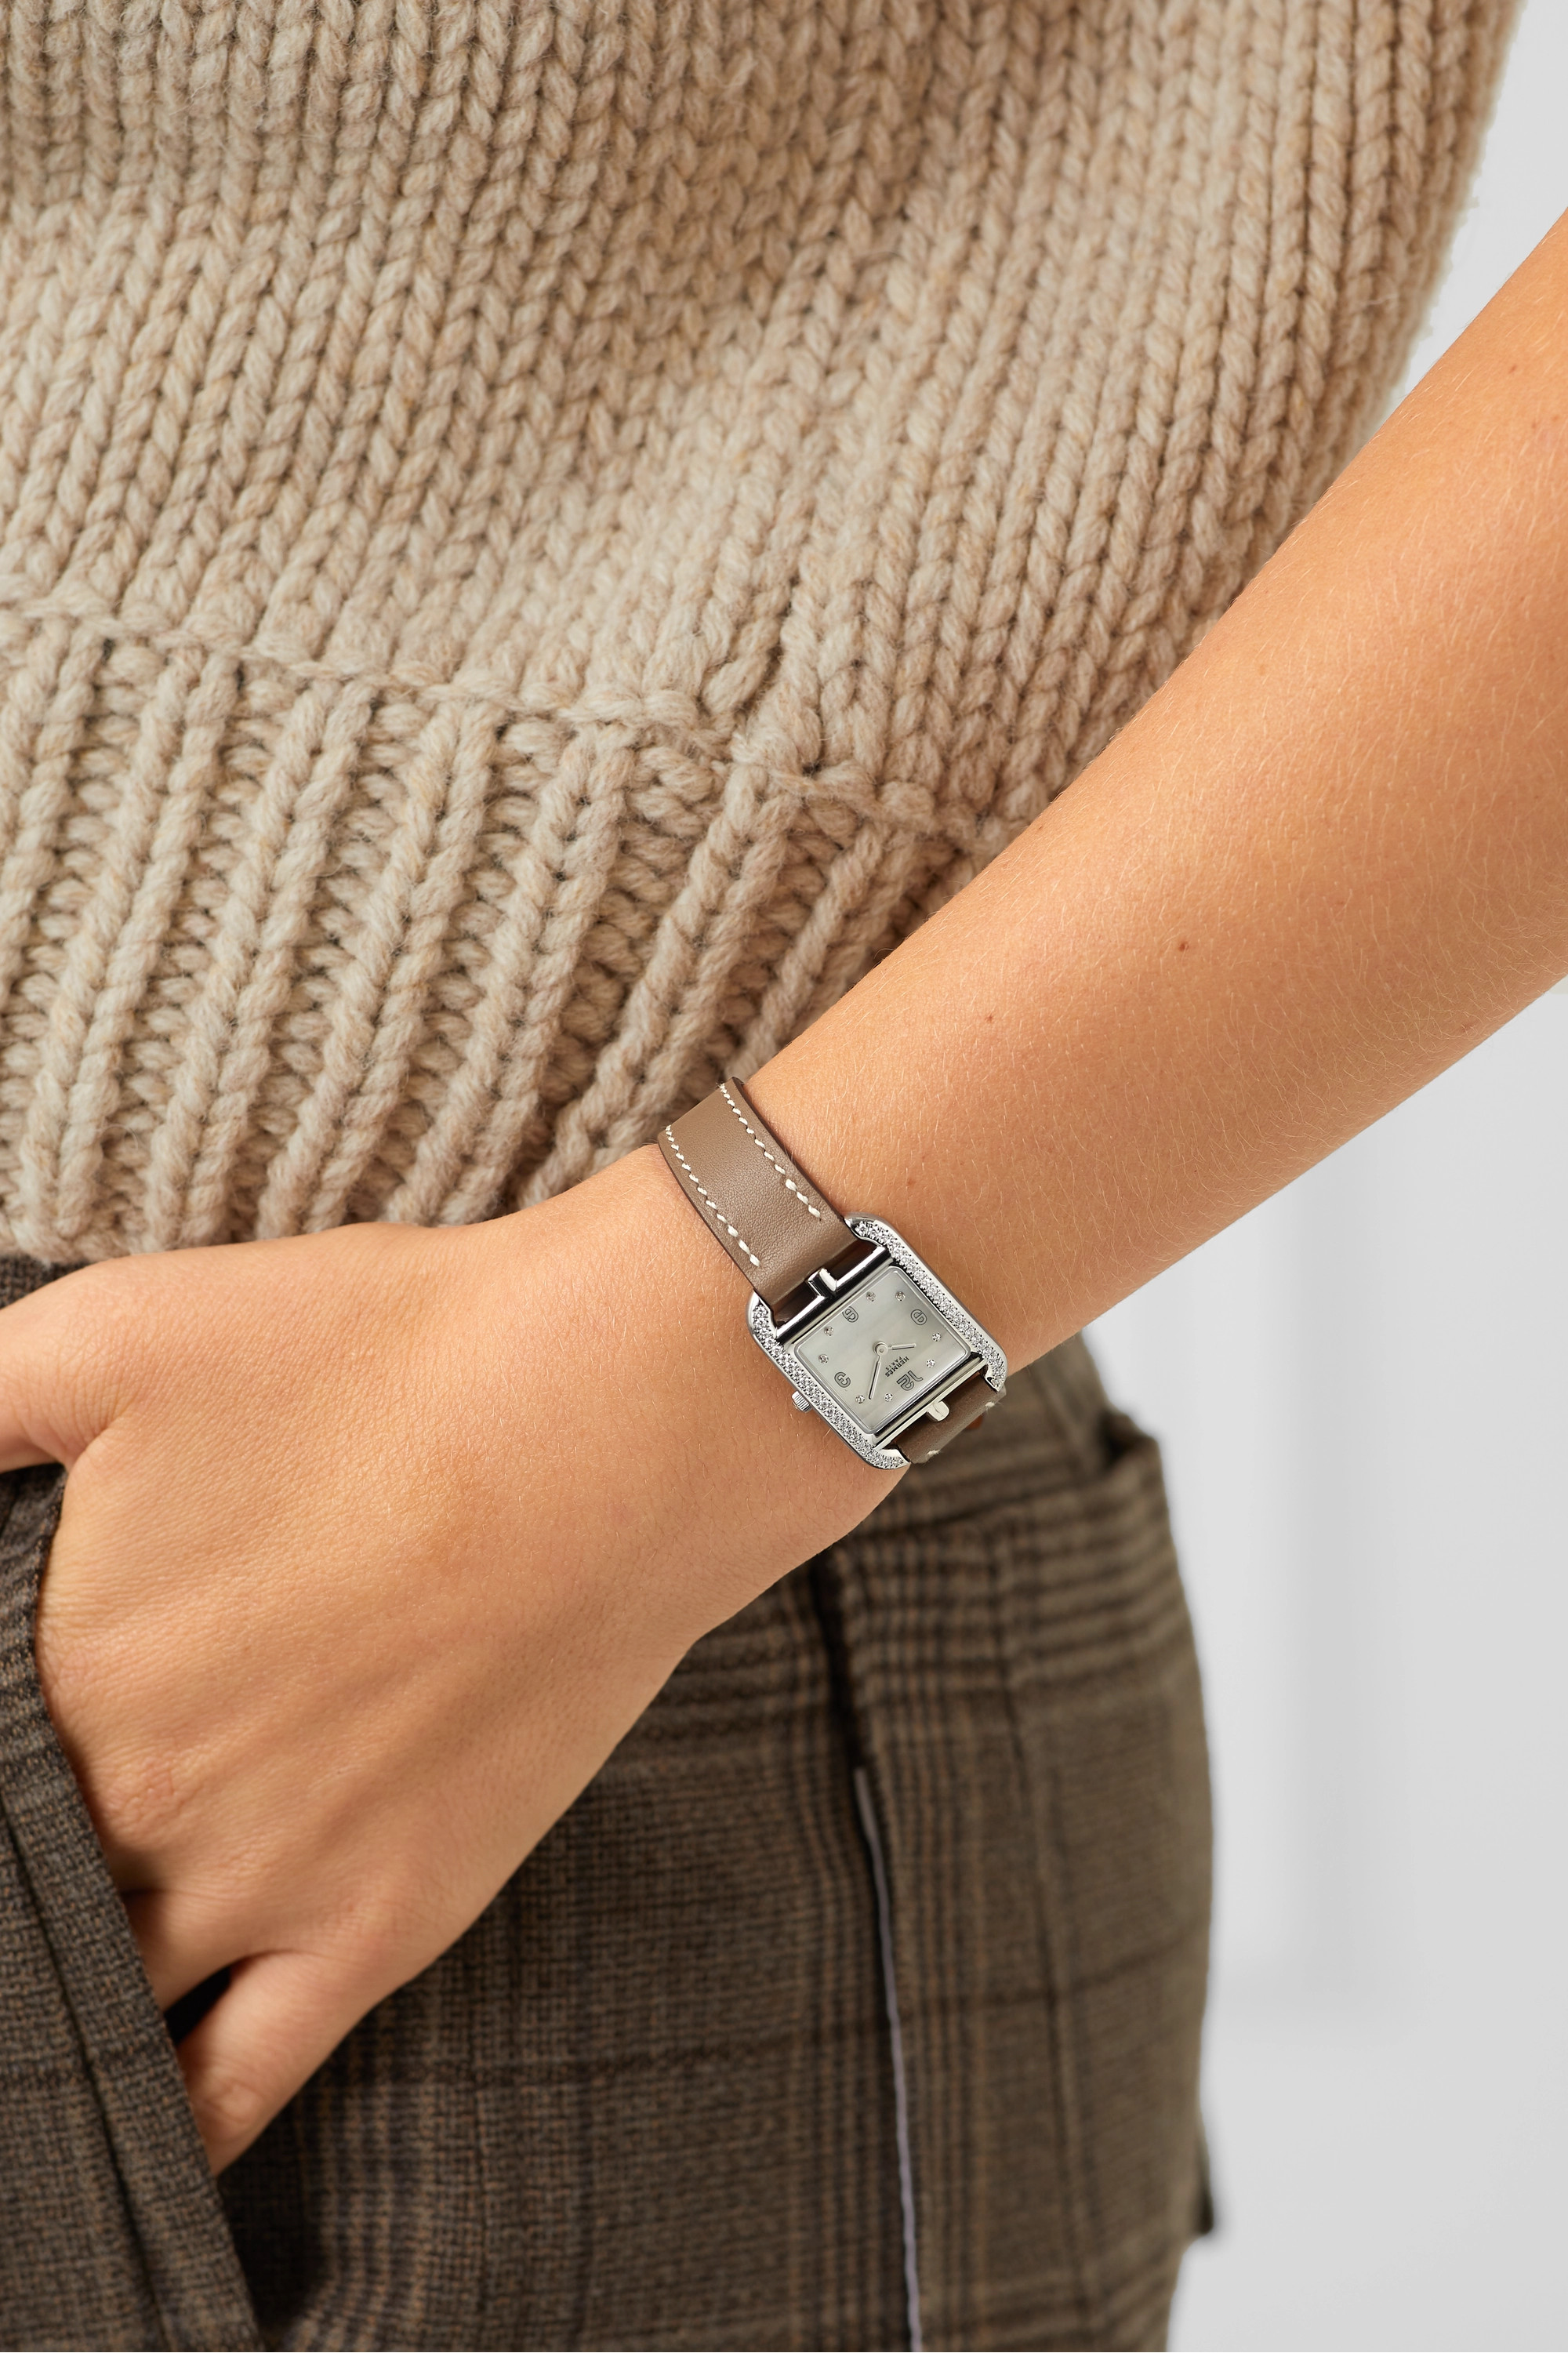 Silver Cape Cod 23mm Small Stainless Steel, Leather, Mother-of-pearl And Diamond Watch | Hermès Timepieces